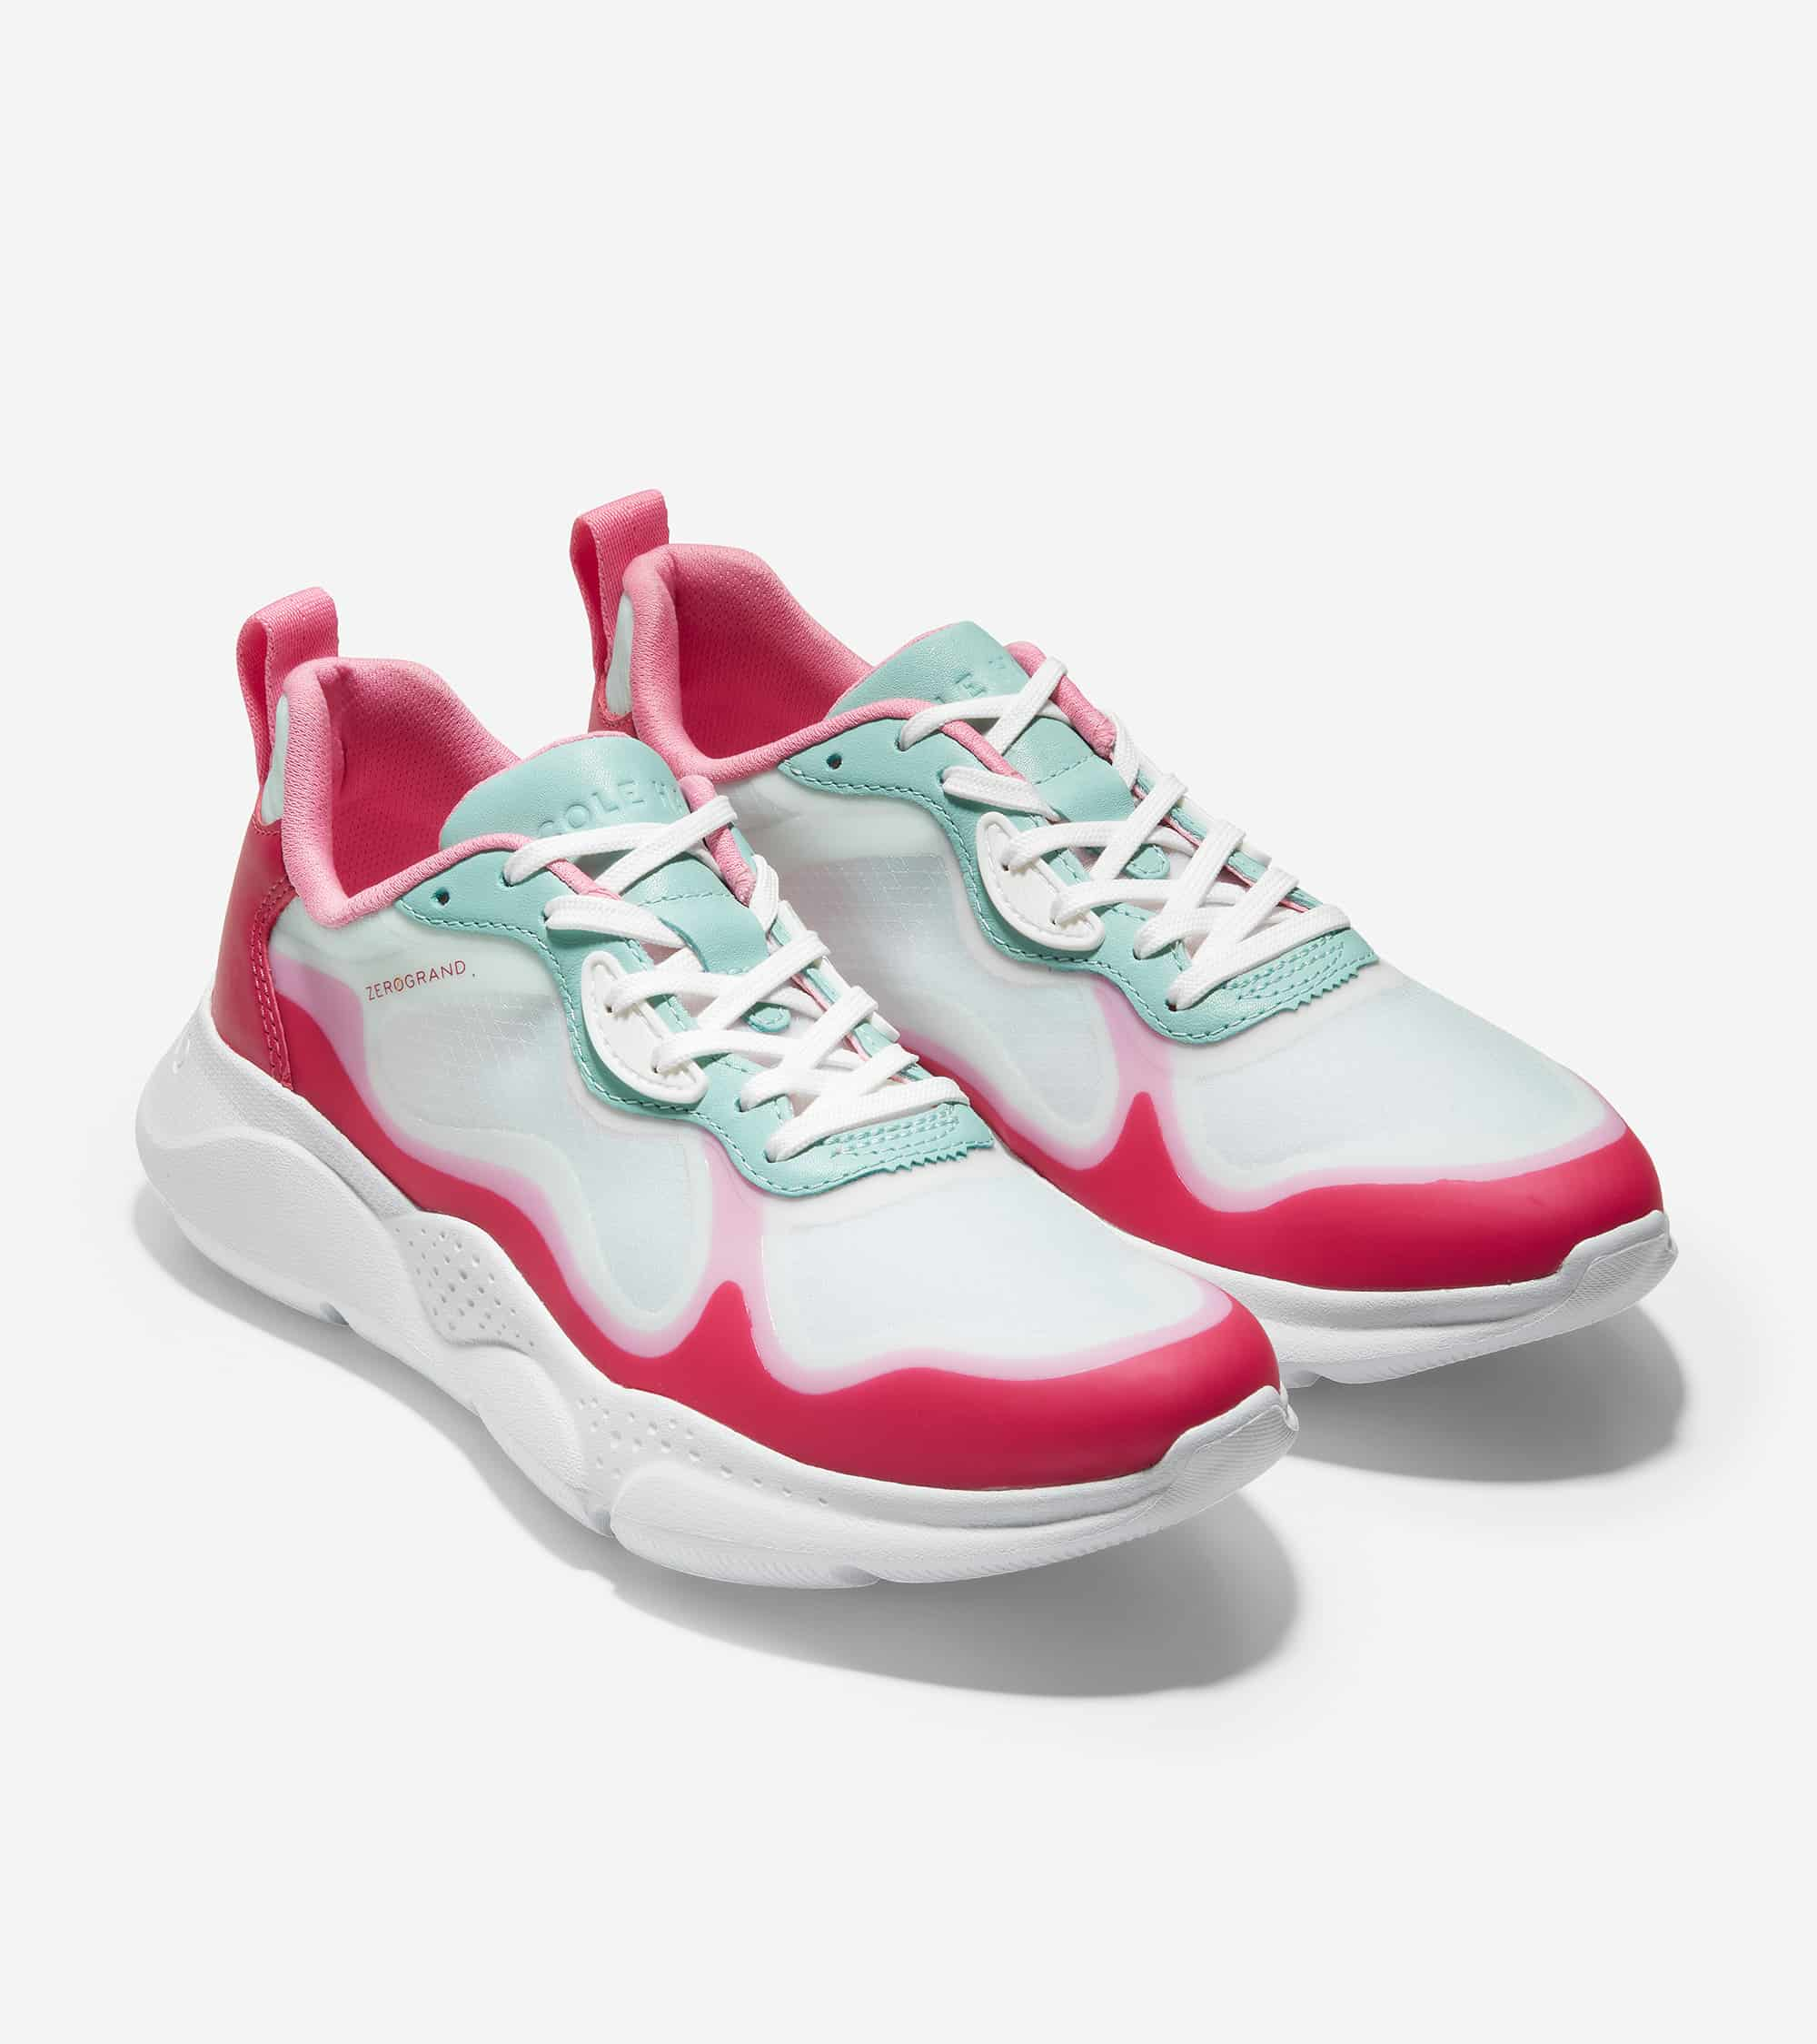 ZEROGRAND RADIANT SNEAKER LOVE POTION/TROPICAL PINK/BLUE TINT TPU/ BLUE TINT & LOVE POTION LEATHER/ OPTIC WHITE